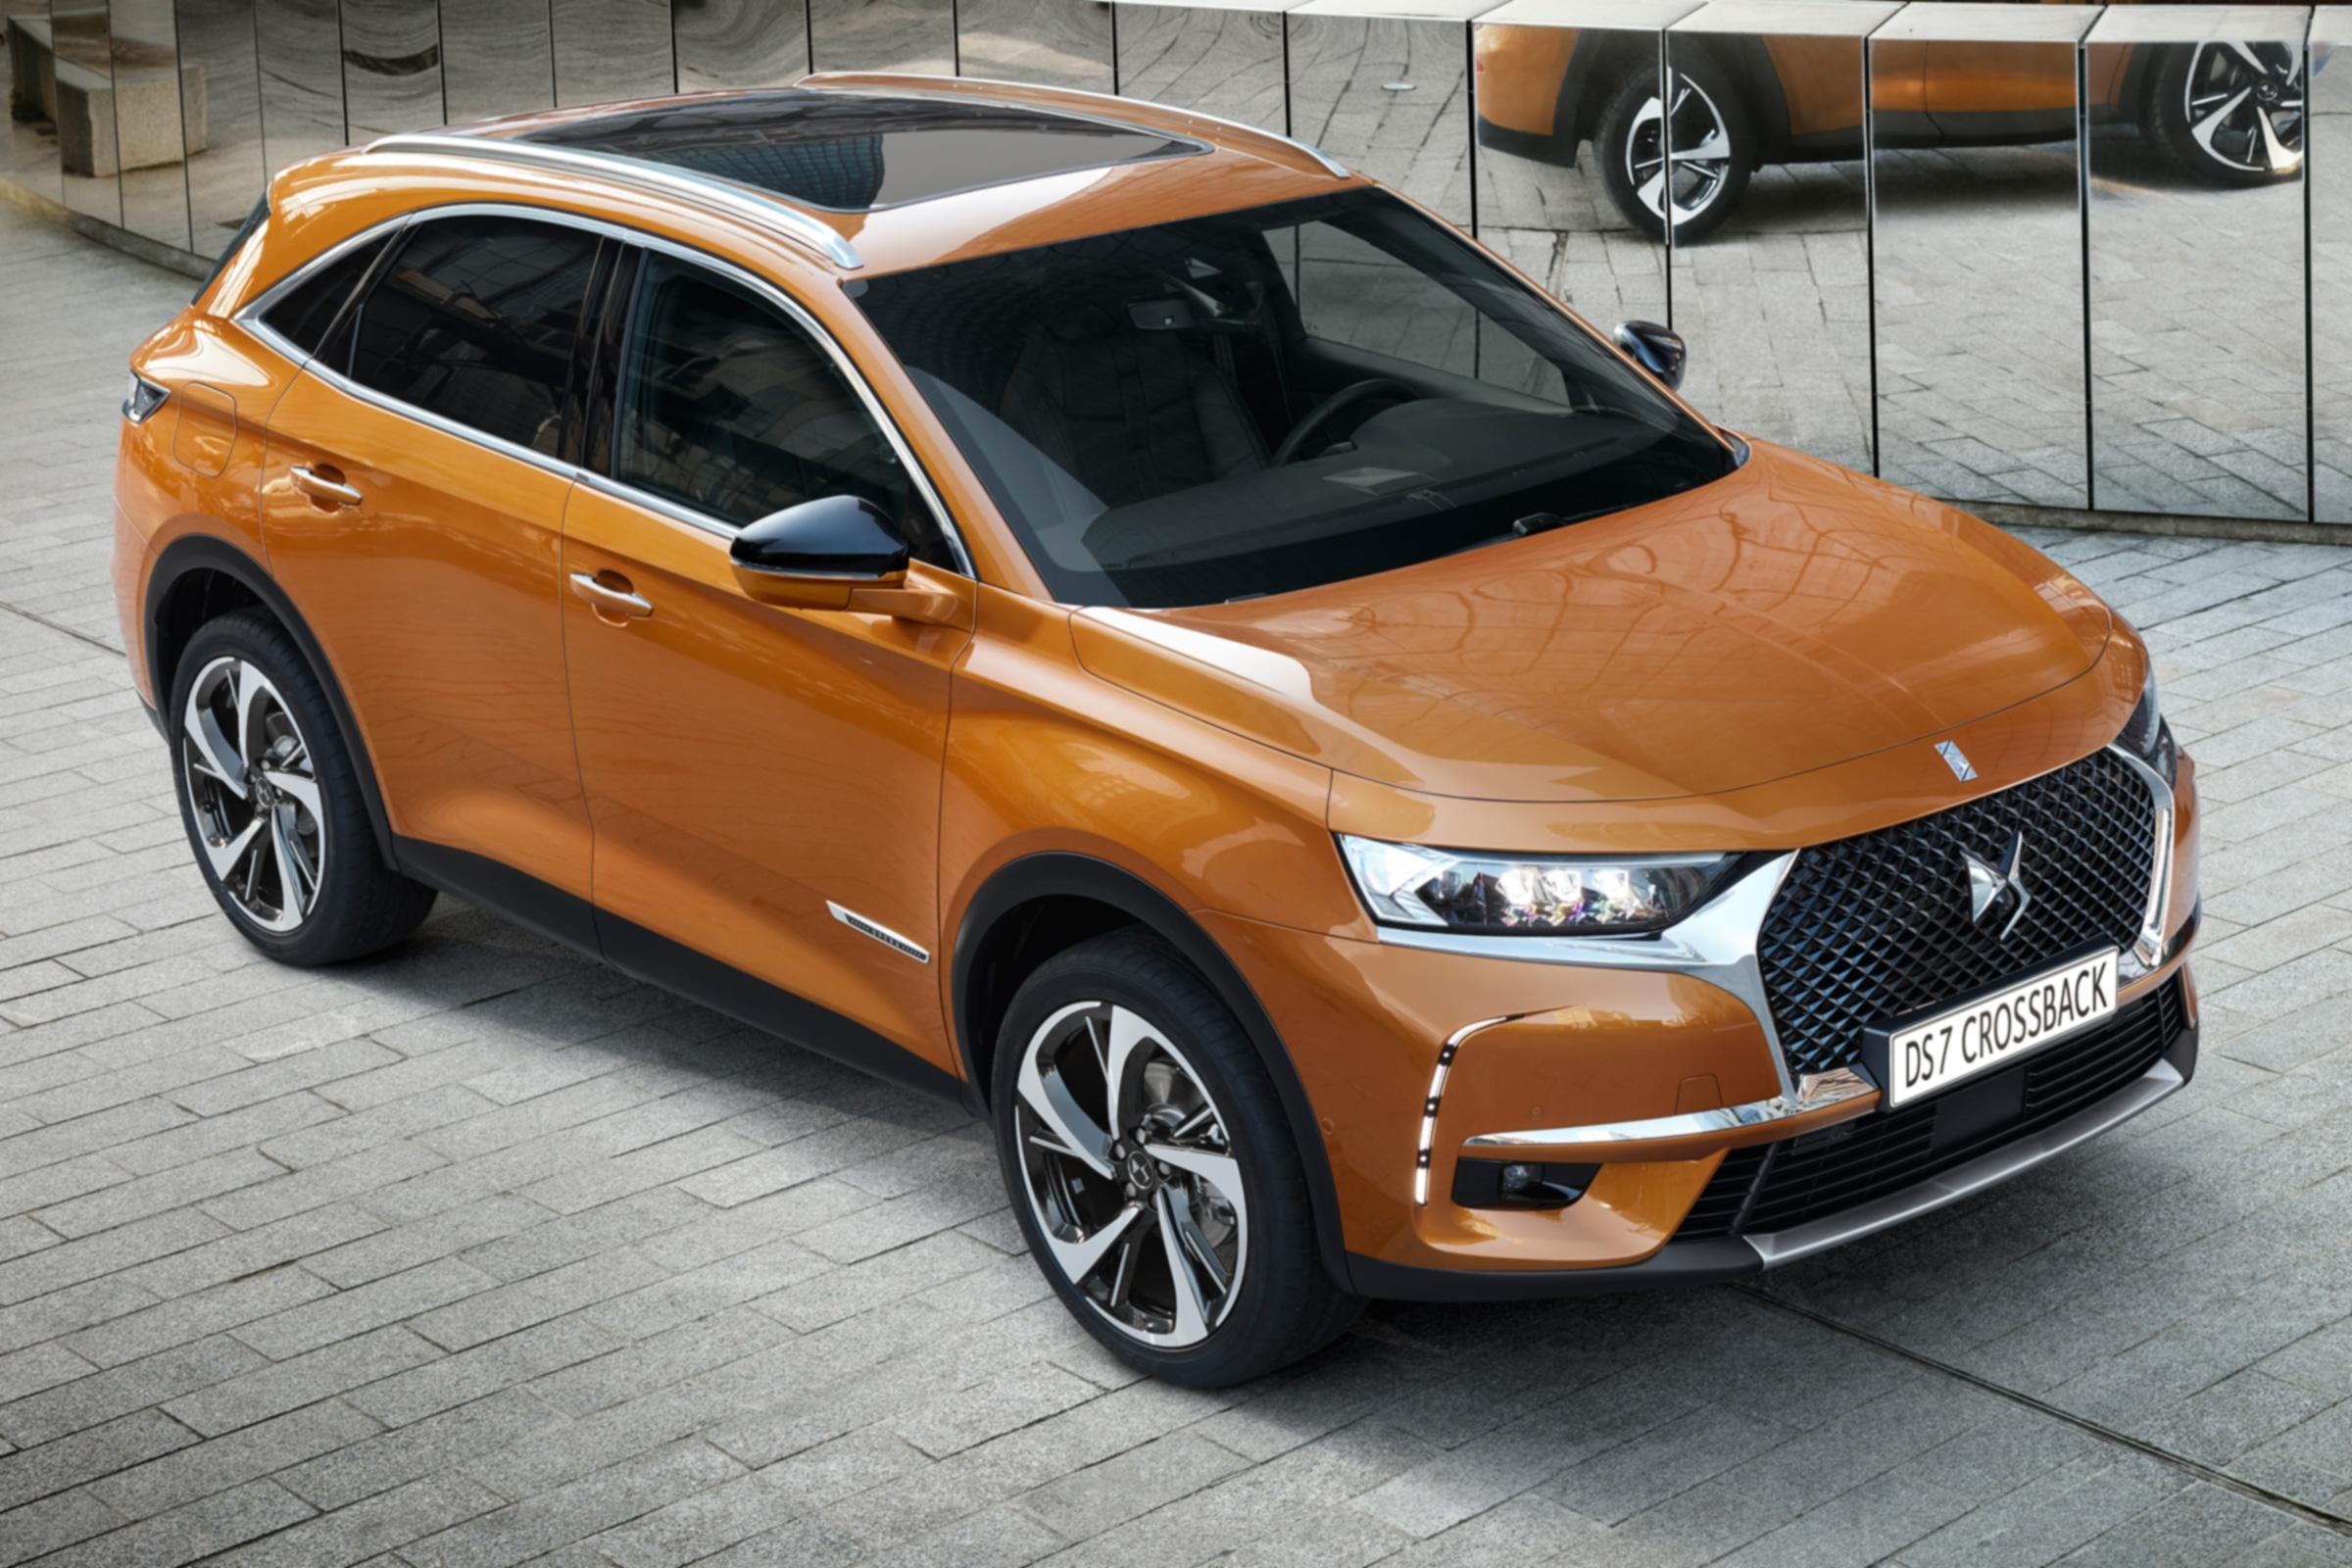 New DS 7 Crossback SUV: full details, prices and pics | Auto Express